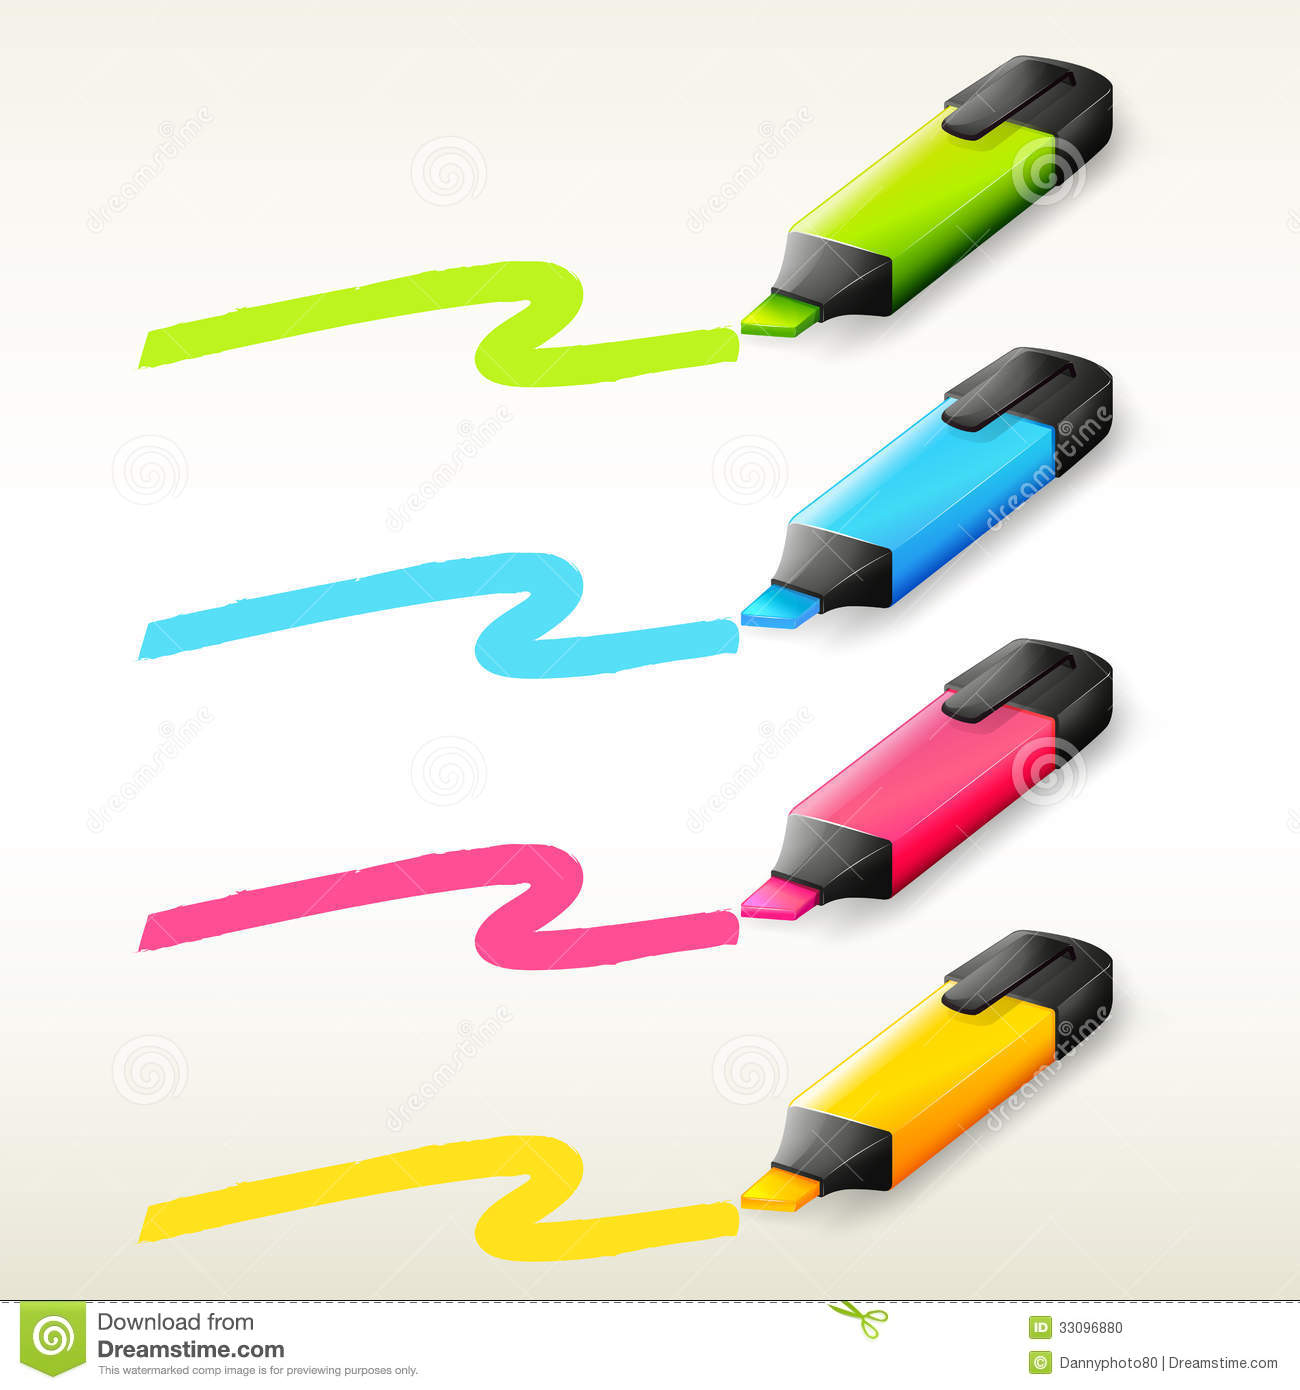 Four markers in different colors